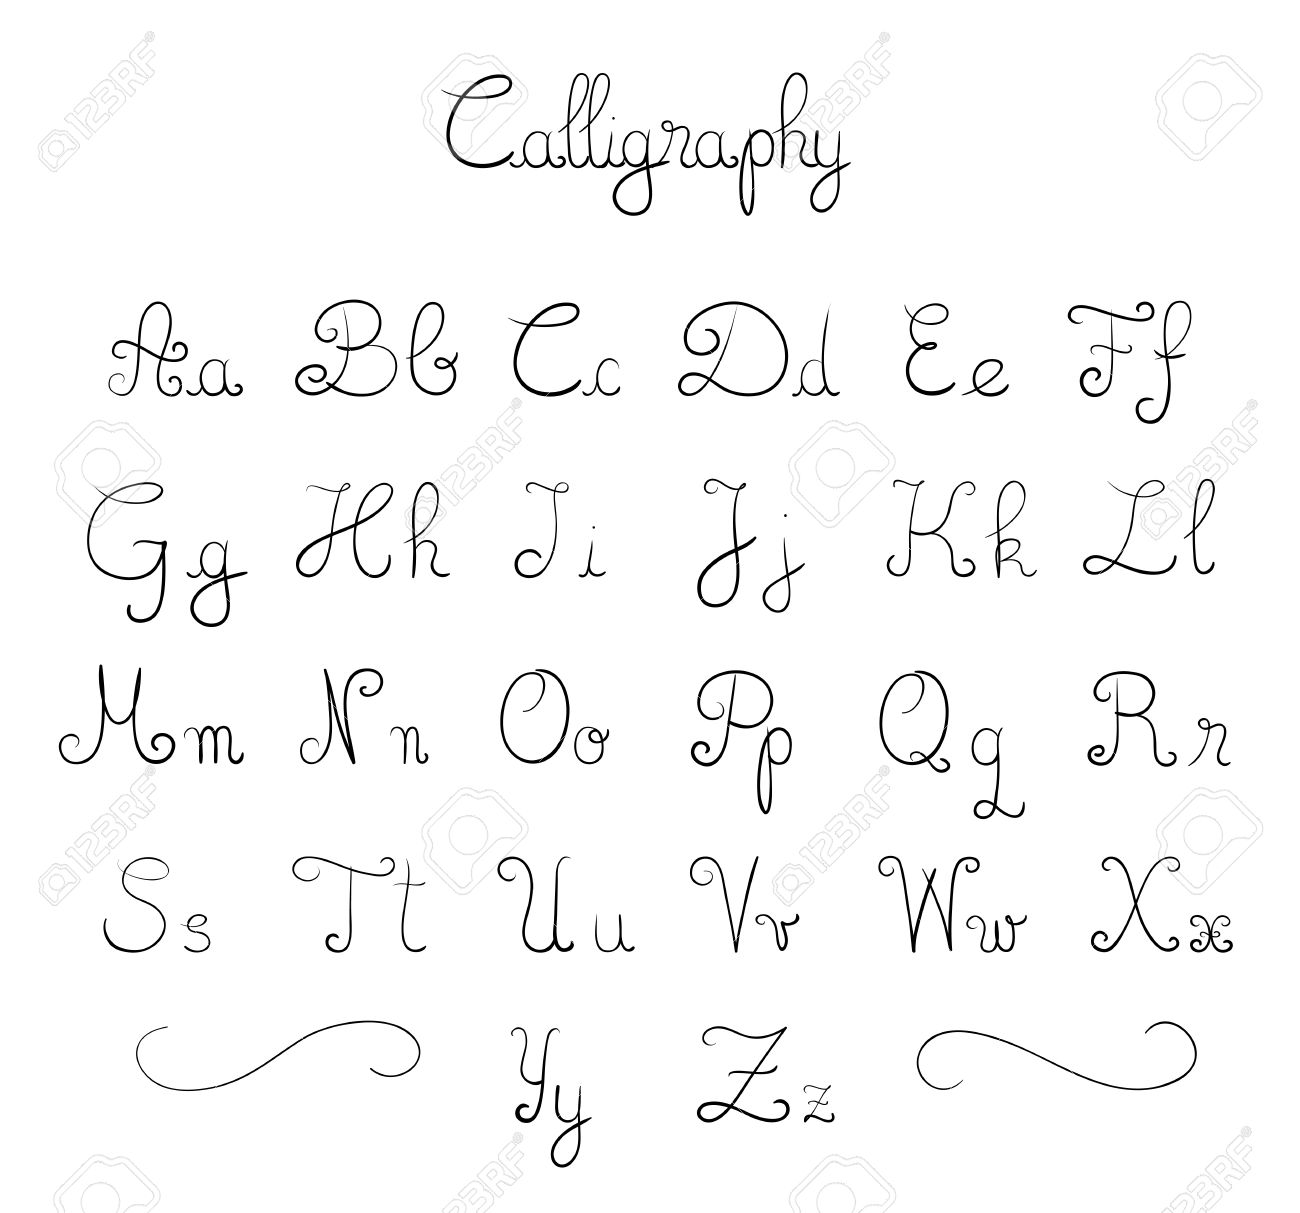 Hand Drawn Calligraphic Font Royalty Free Cliparts, Vectors, And ...